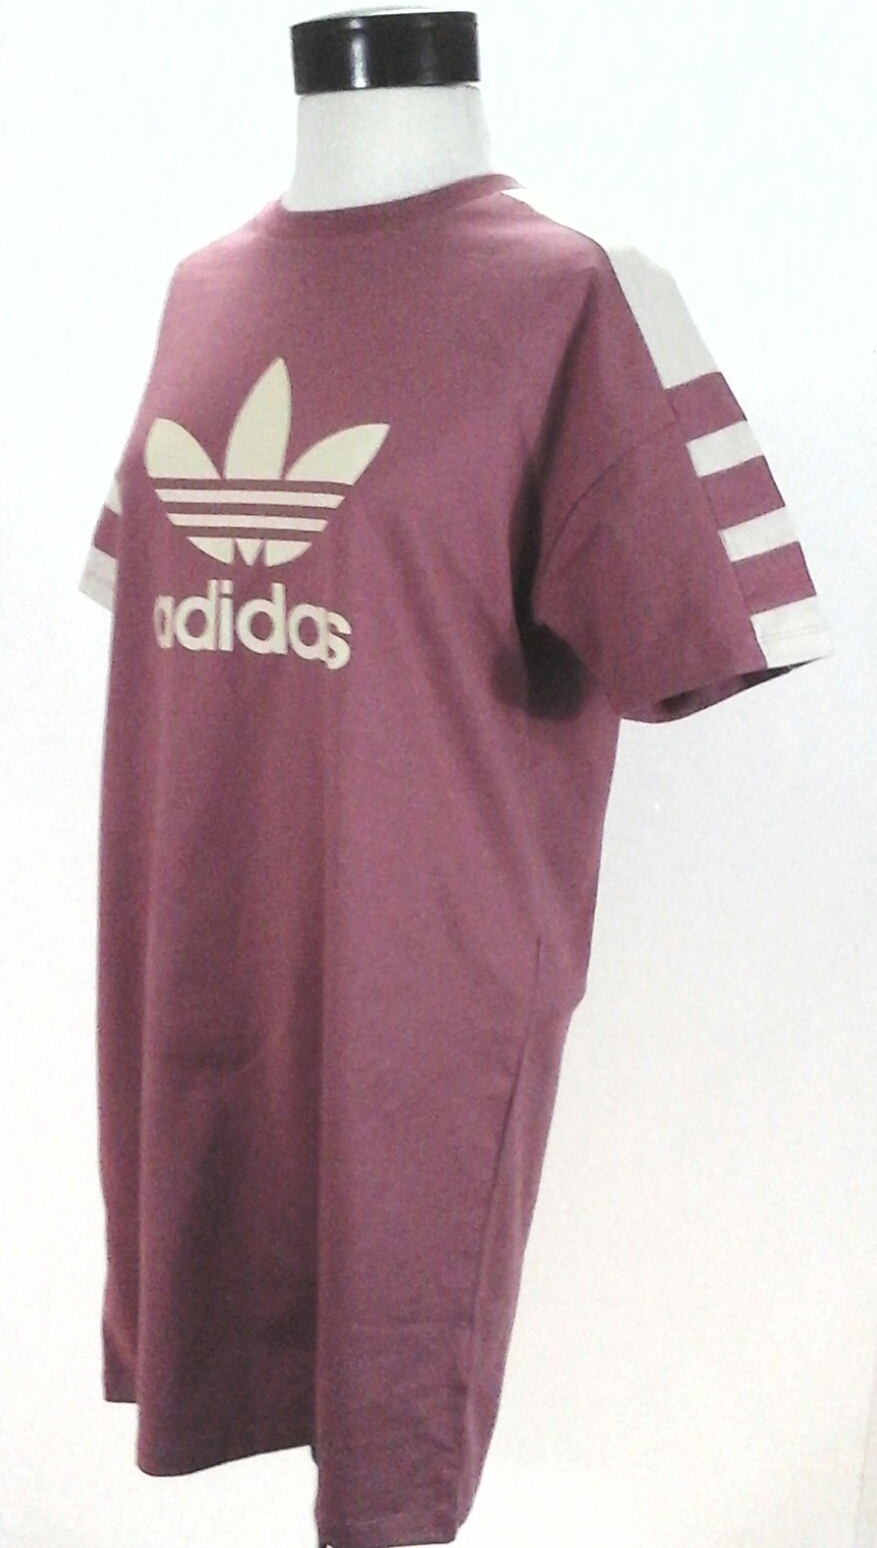 Rose Cream Trefoil Dh4181 T Pink Dress Tee Adidas W Shirt YXBE4Ex